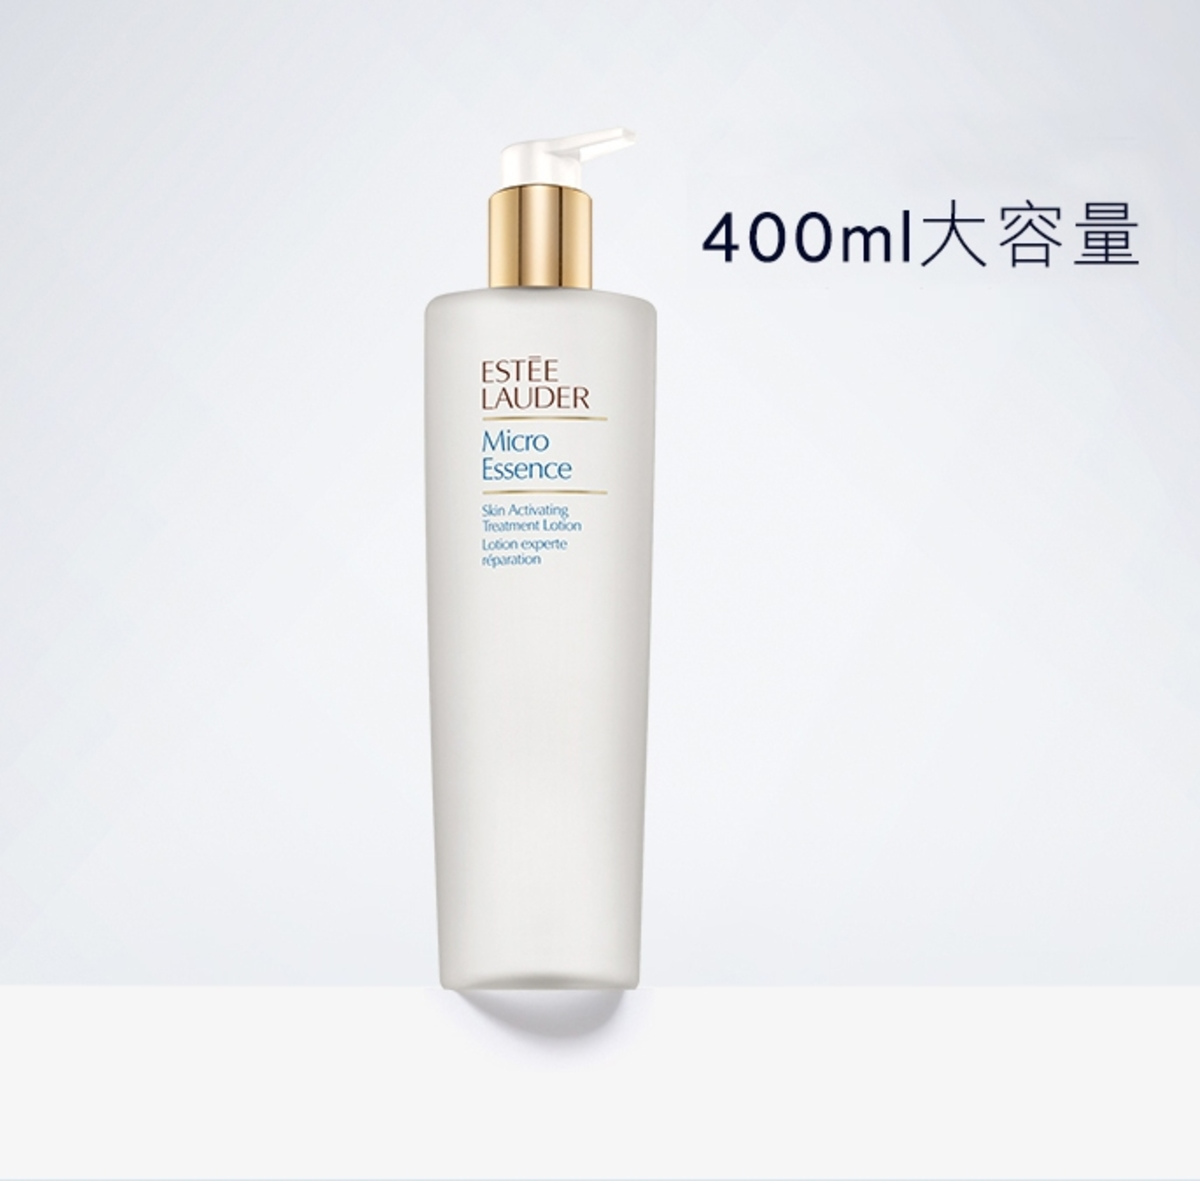 MICRO ESSENCE Skin Activating Treatment Lotion 400ml (Parallel goods)